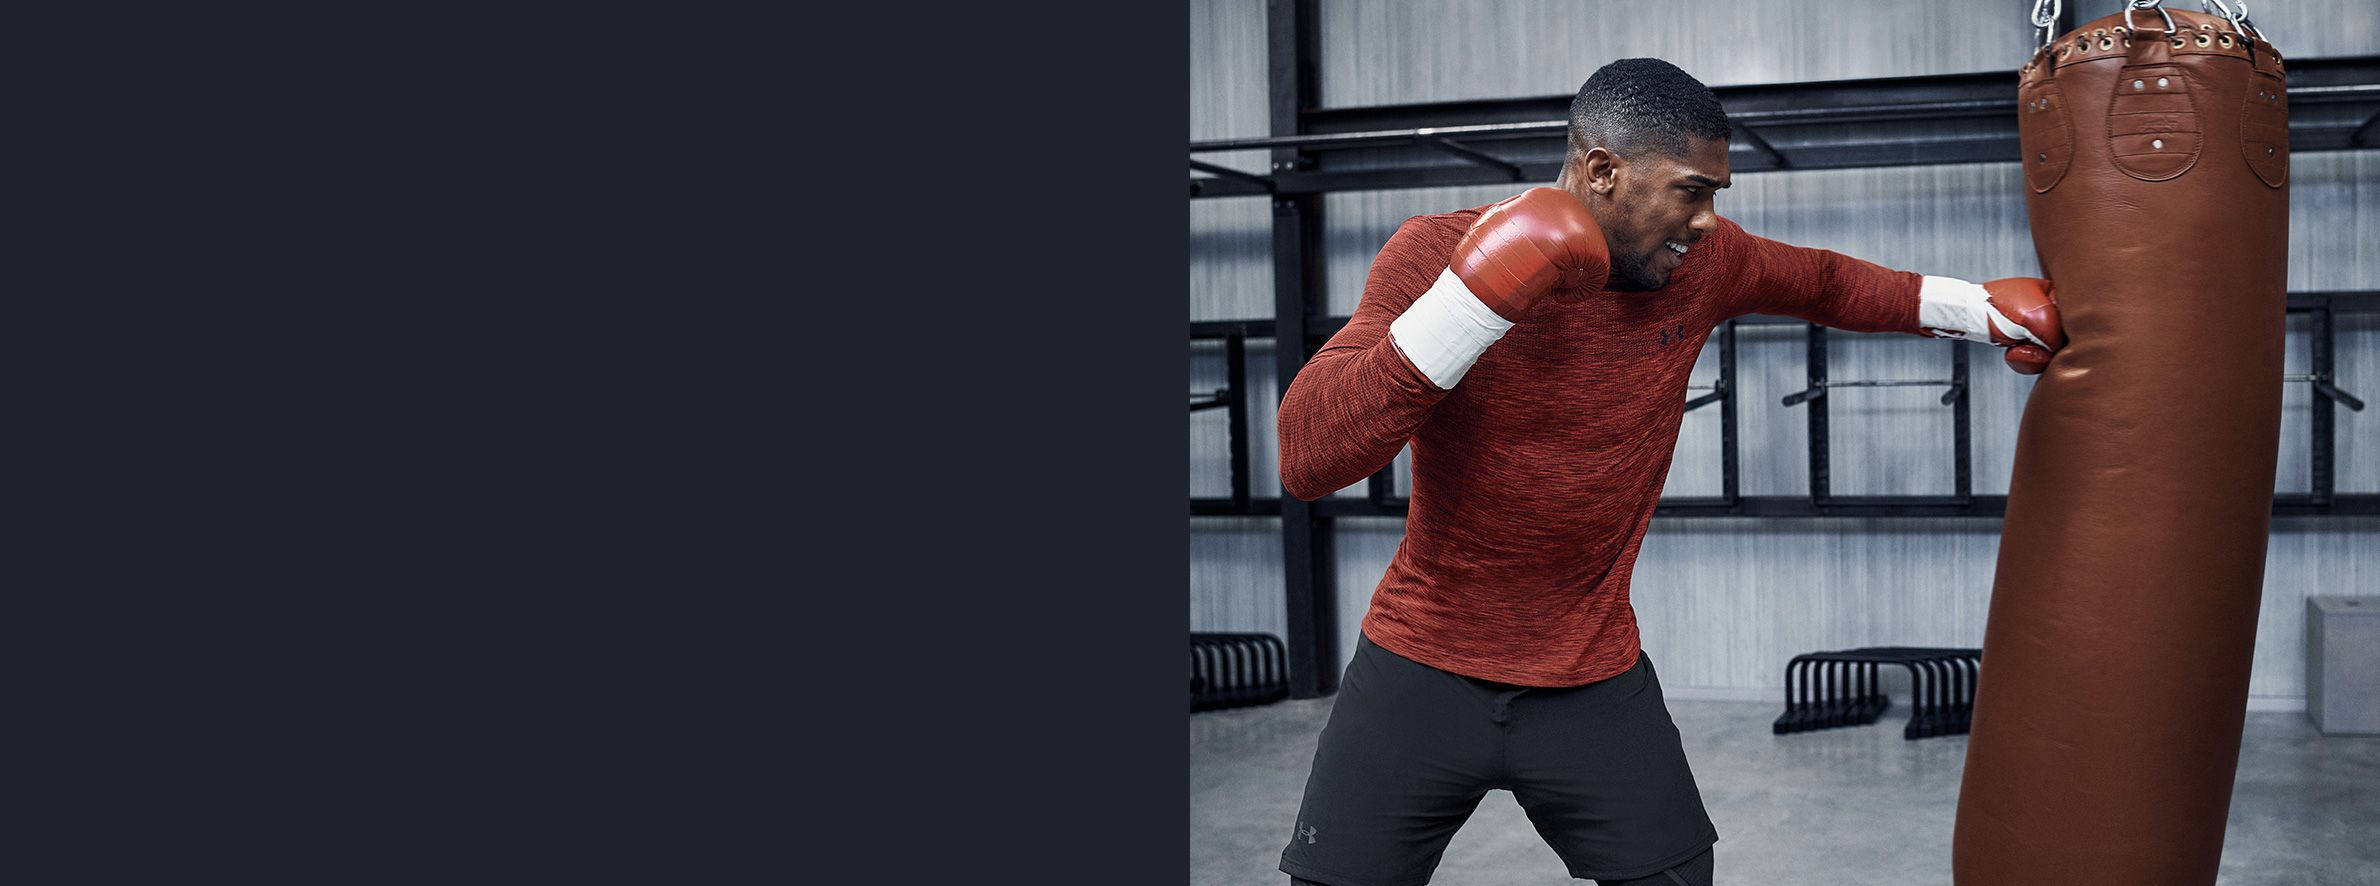 dda502a271 Breathable performance wear with moisture-wicking technology to help  regulate body temperature and keep you comfortable as you train